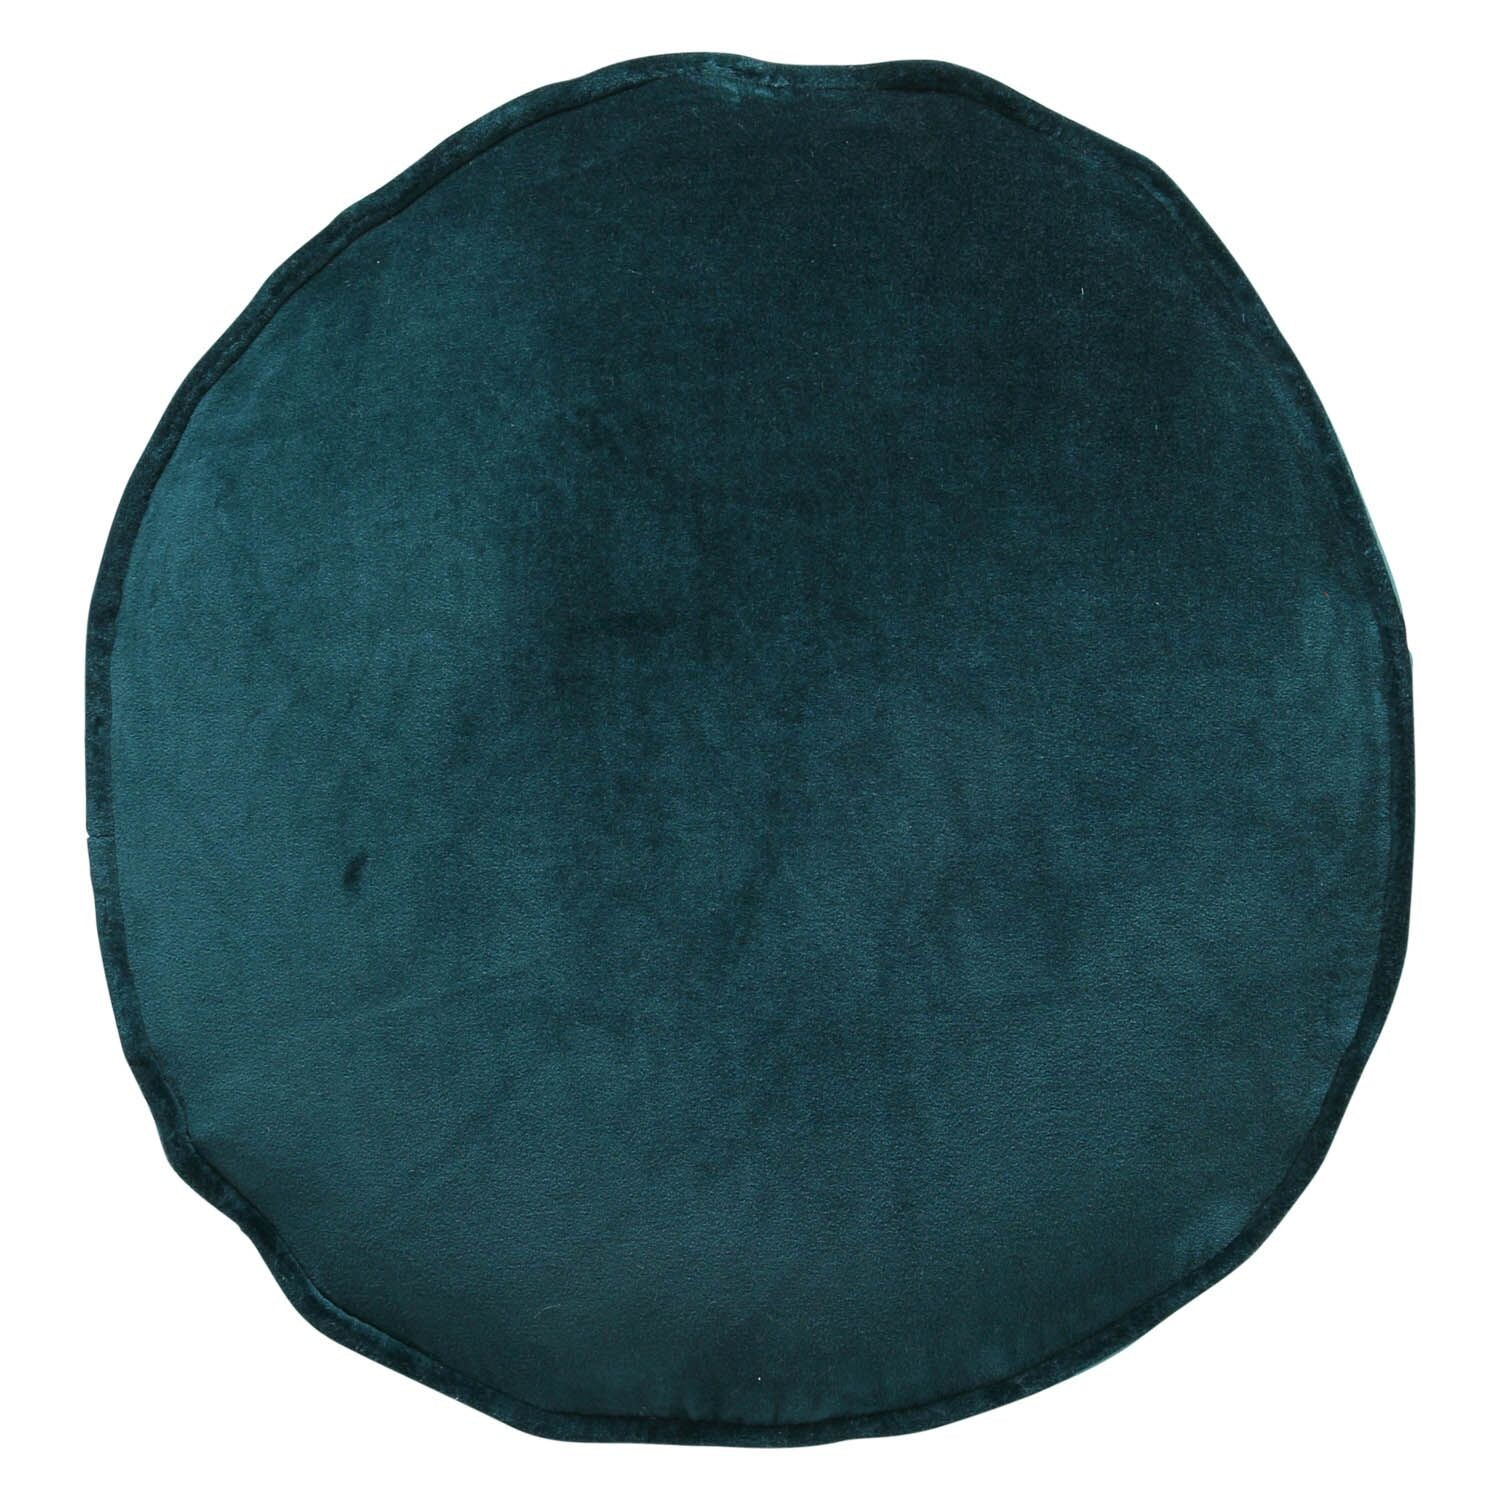 Kip & Co Alpine Green Velvet Pea Cushion - The Artisan Storeroom